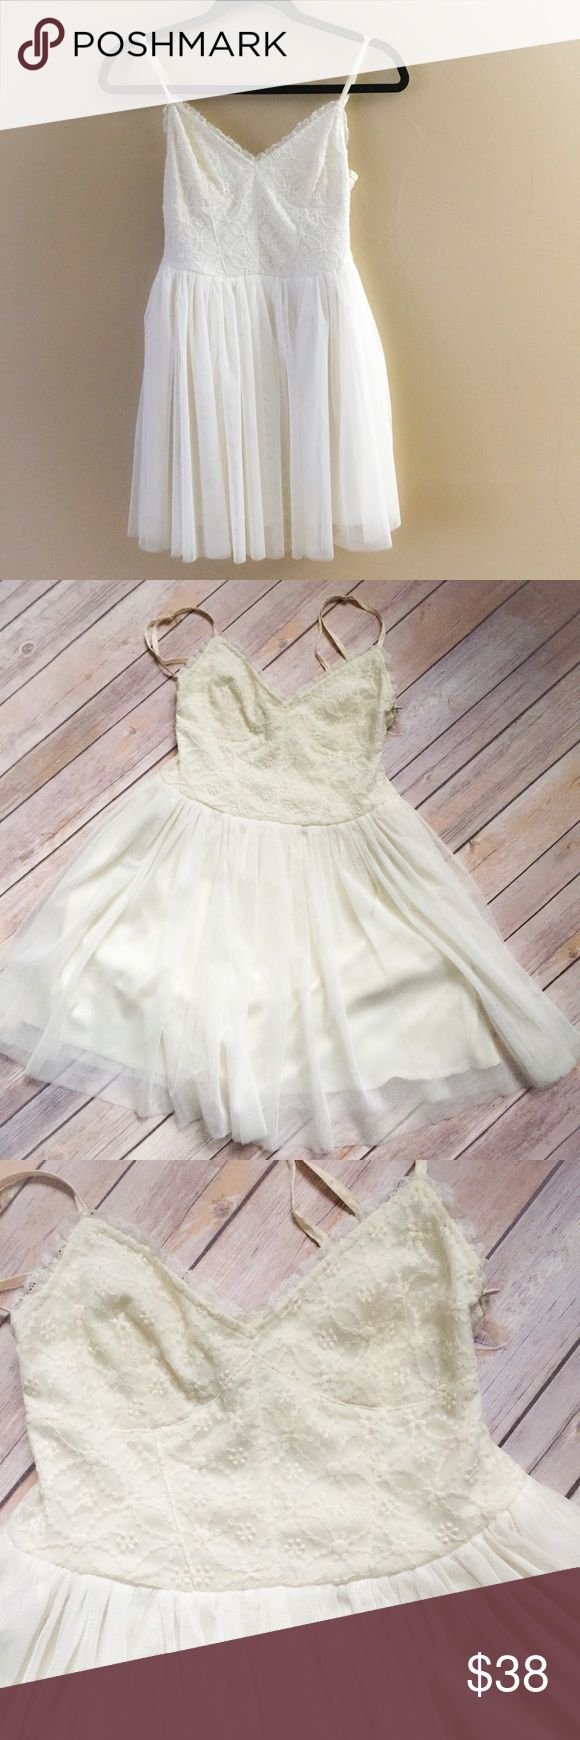 Sans Souci Tulle Boho Fairy Dress Small This cream mini dress by Sans Souci is very full at the bottom. It has a sweetheart necklace with lace in the bodice. Side Zip. The size is small. Excellent Condition. Sans Souci Dresses Mini